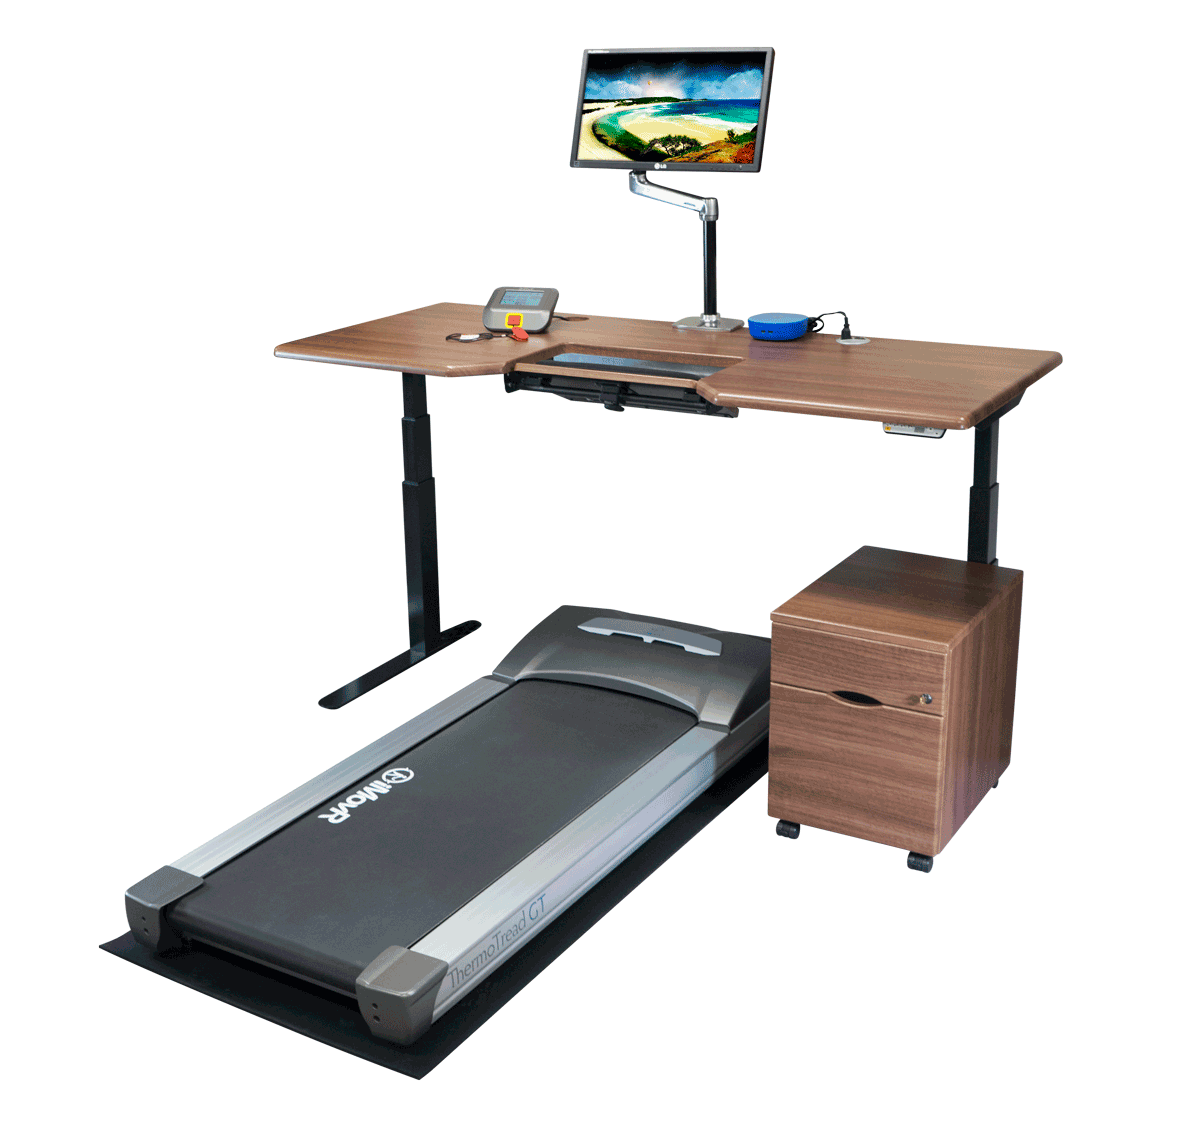 trekdesk workout desk reviews cancel a work leave reply at treadmill alaskans with